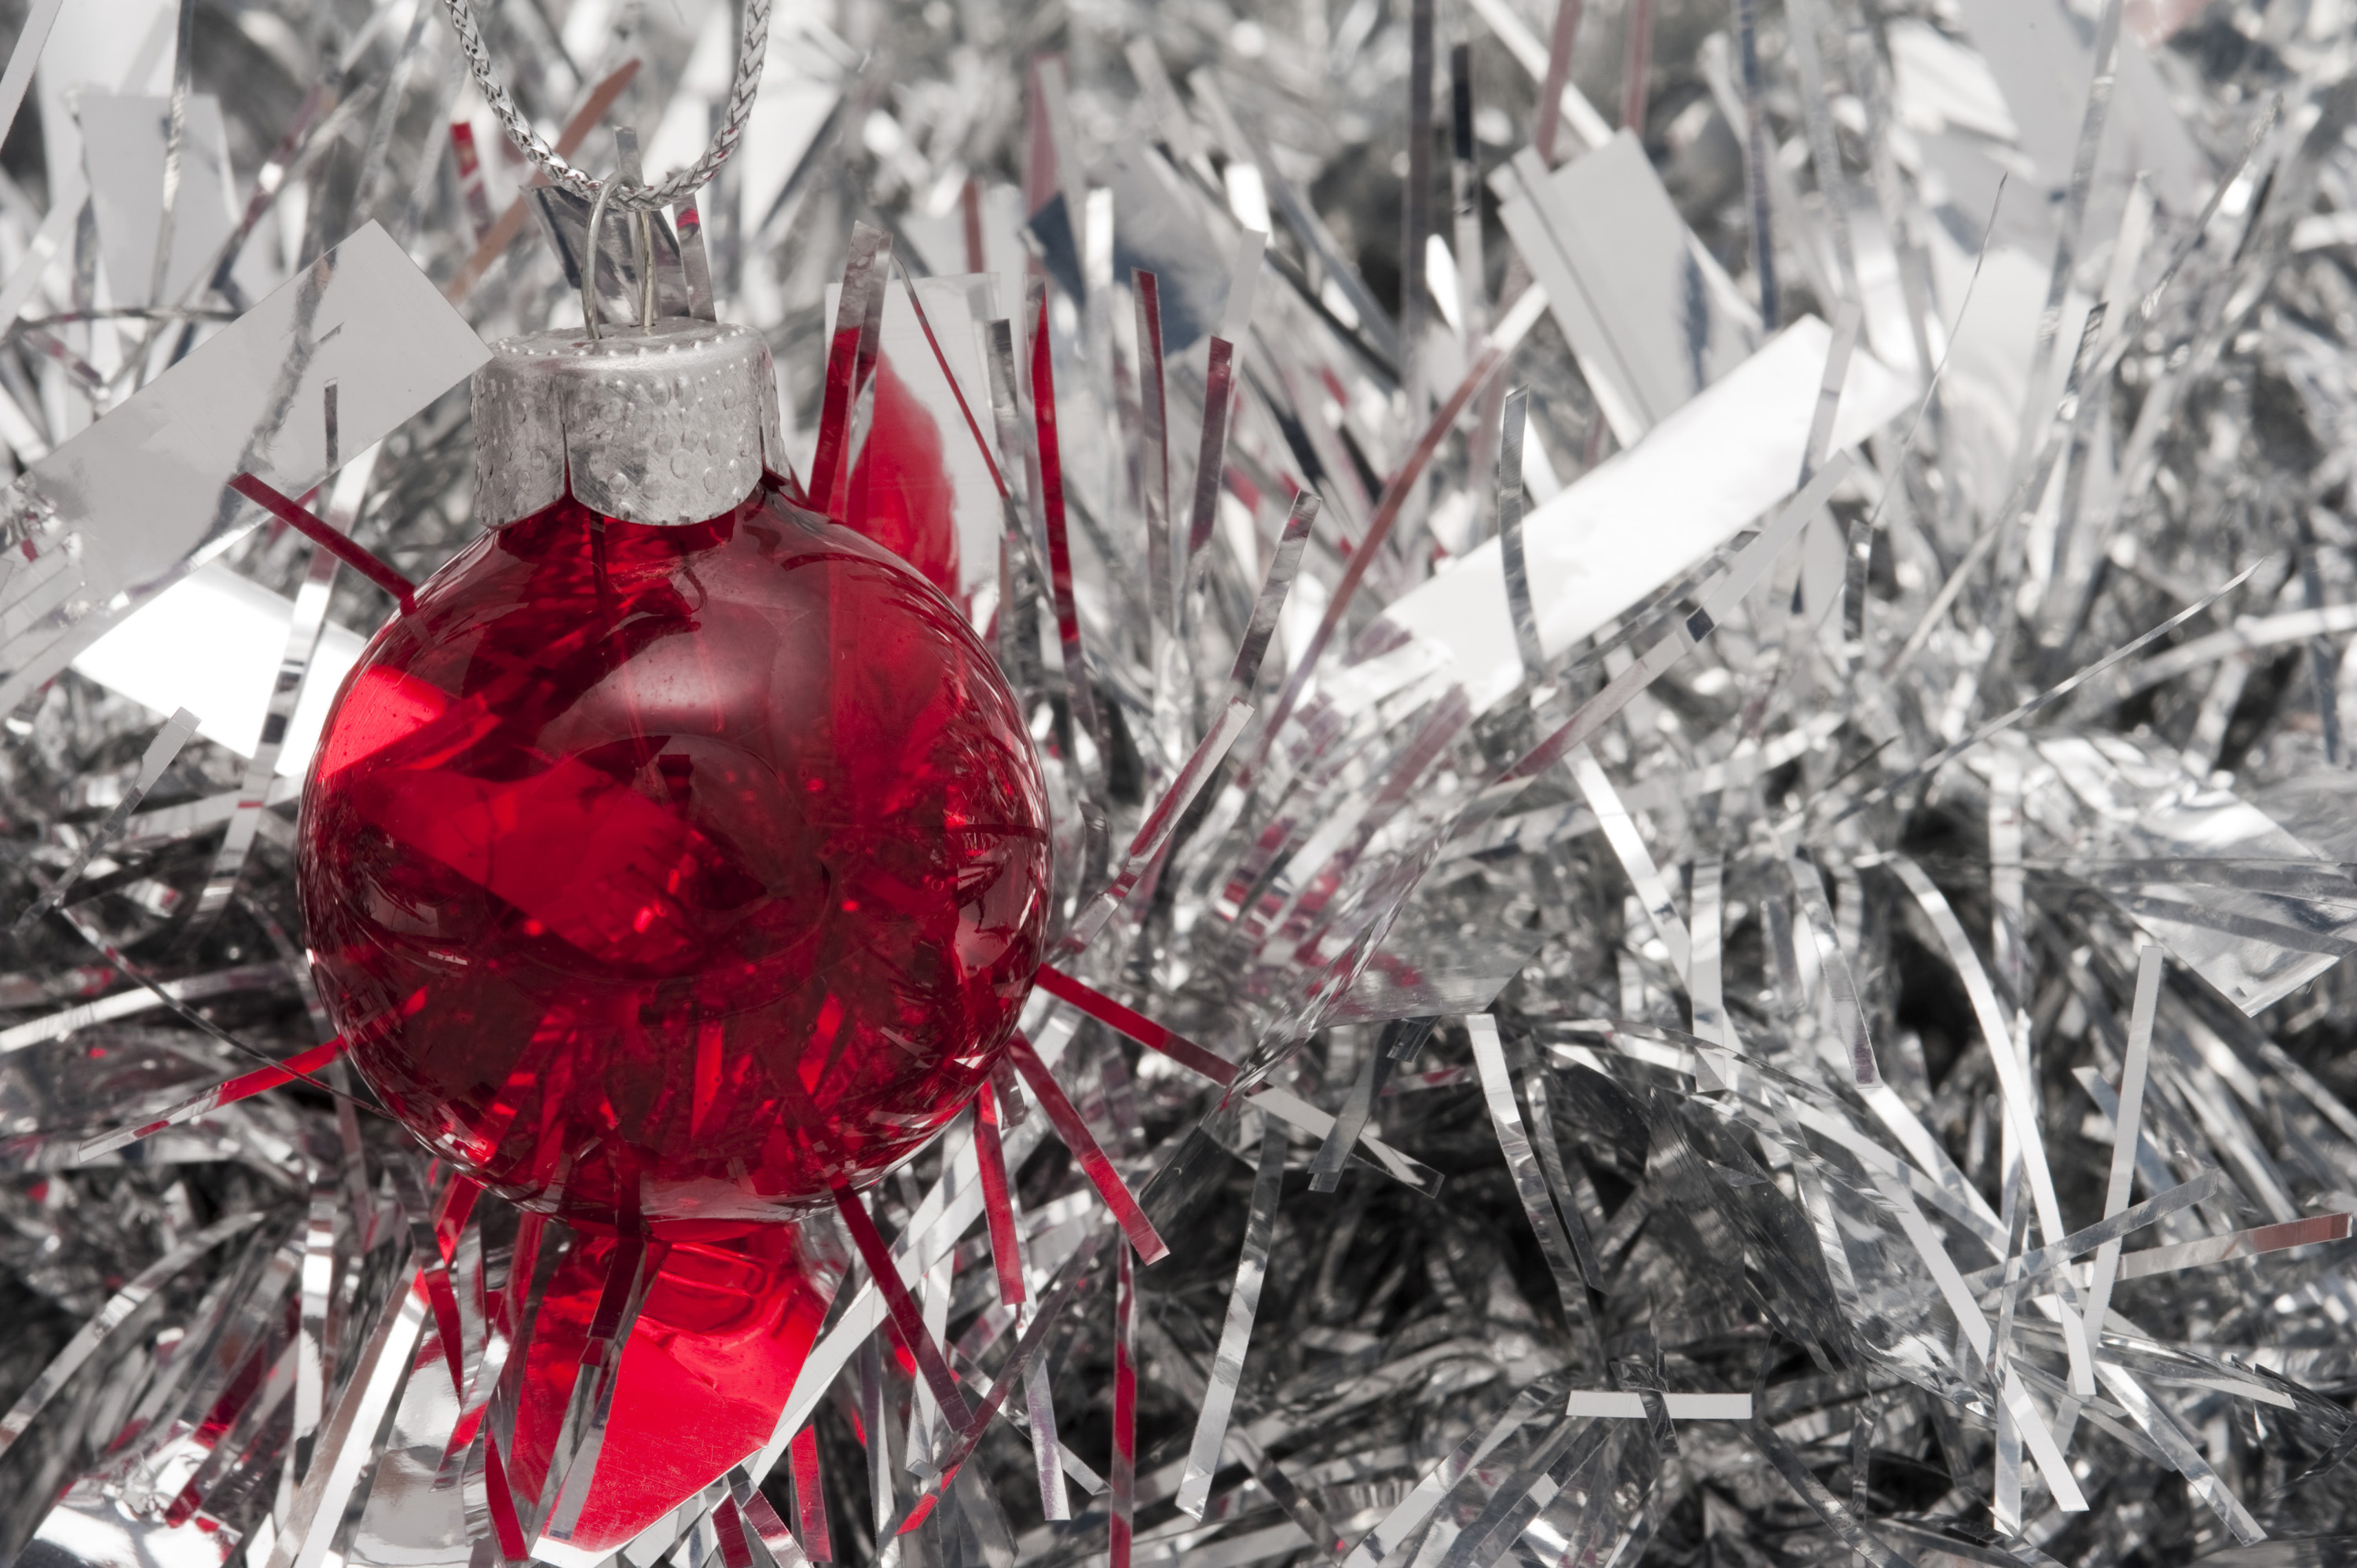 red christmas ornament on background of silver glittering tinsel